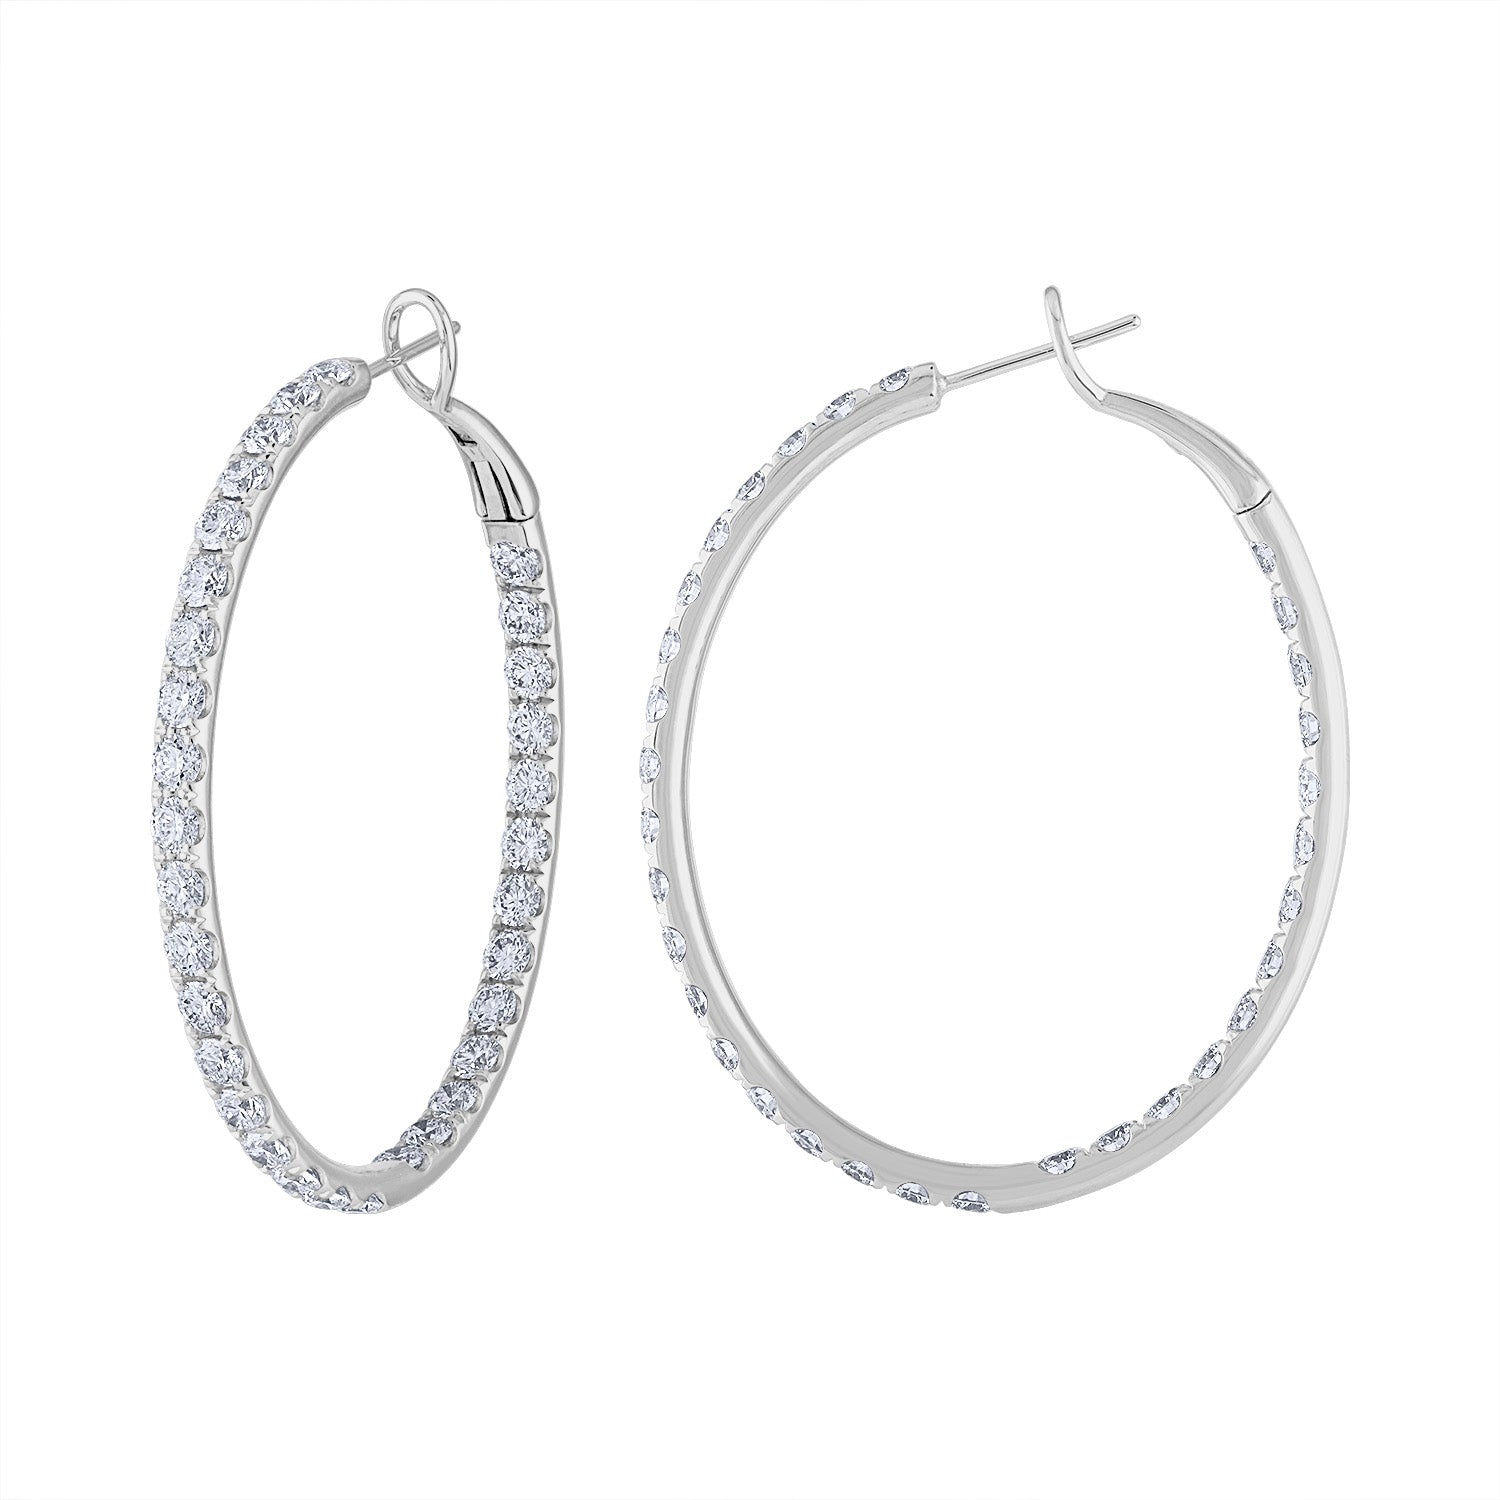 18KT GOLD DIAMOND LARGE OVAL HOOP EARRING